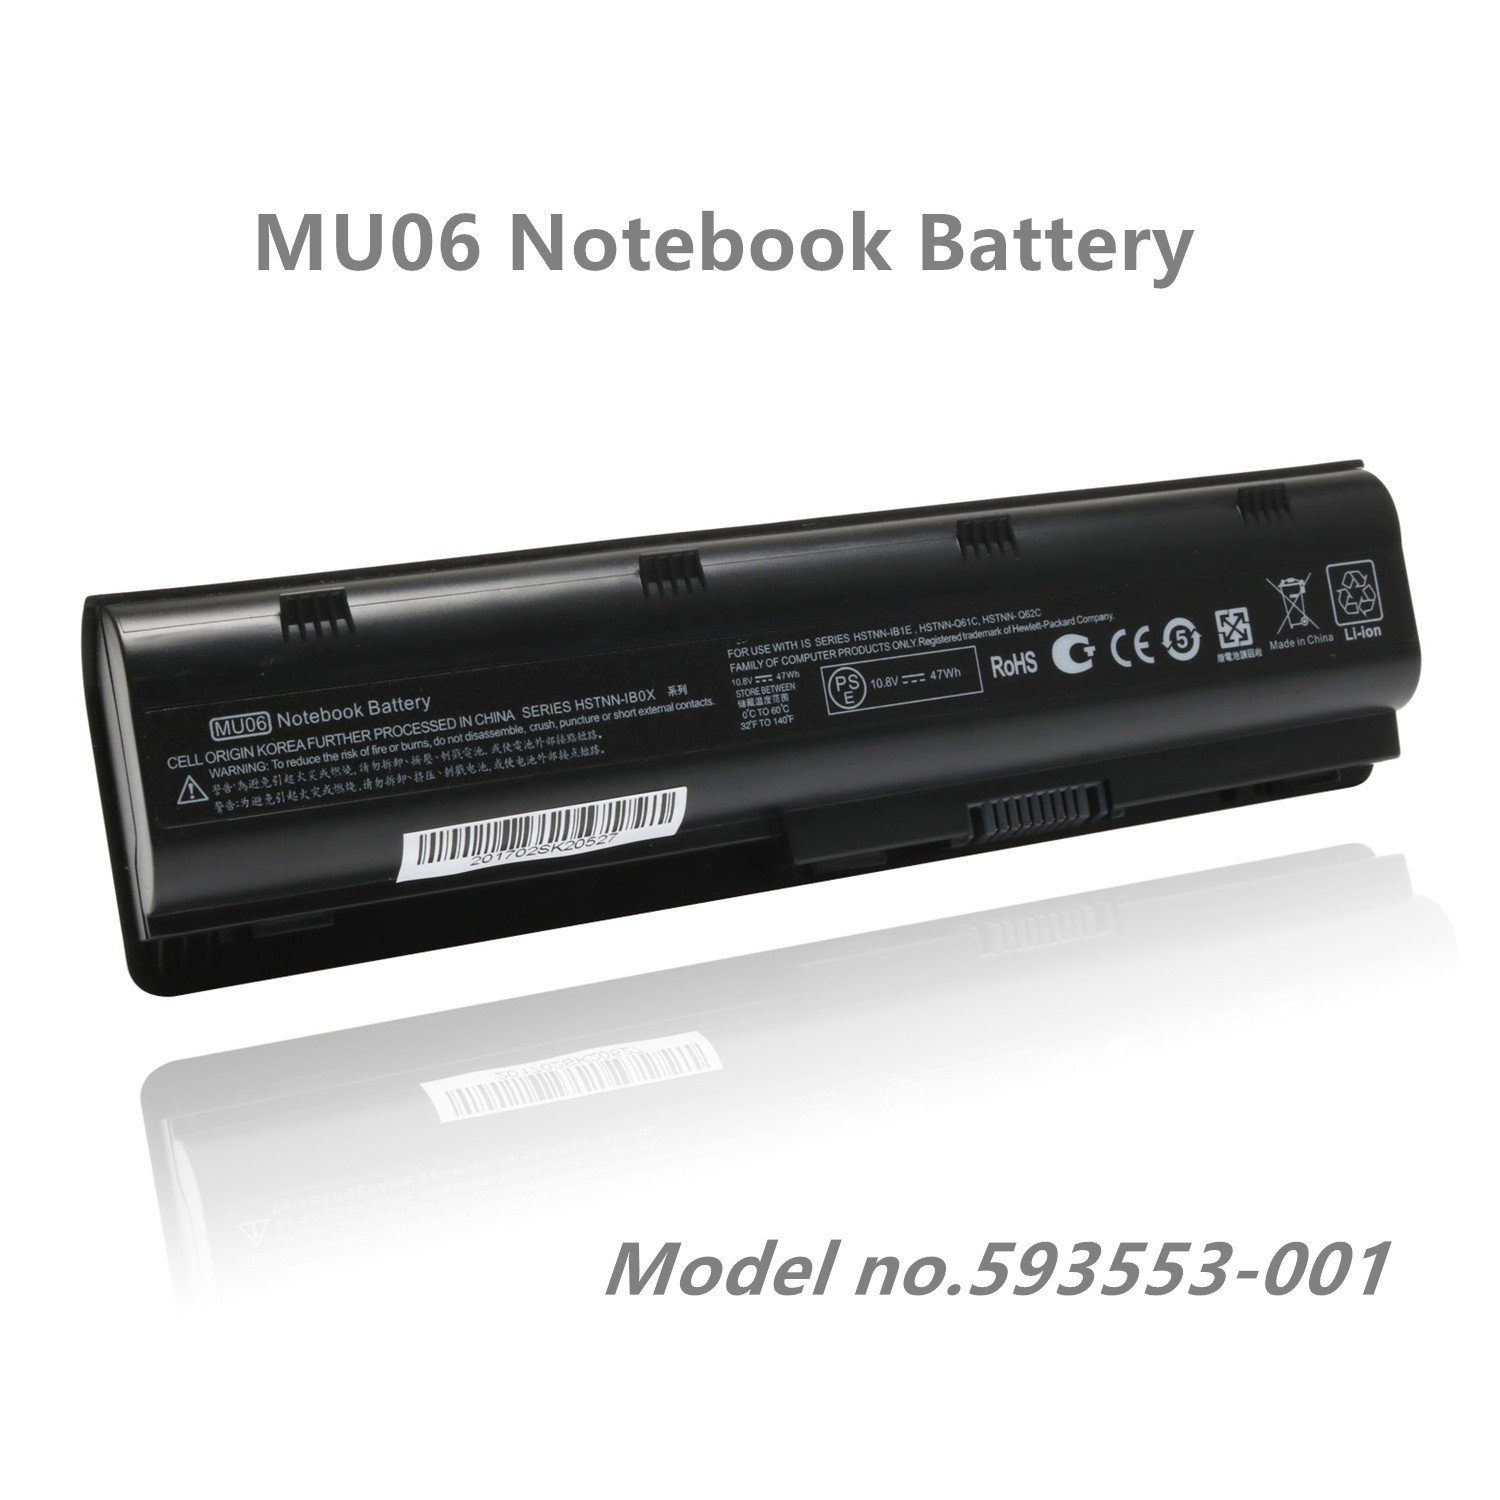 SKstyle Replacement Laptop Battery for 593553-001-HP Battery- MU06 Notebook Battery